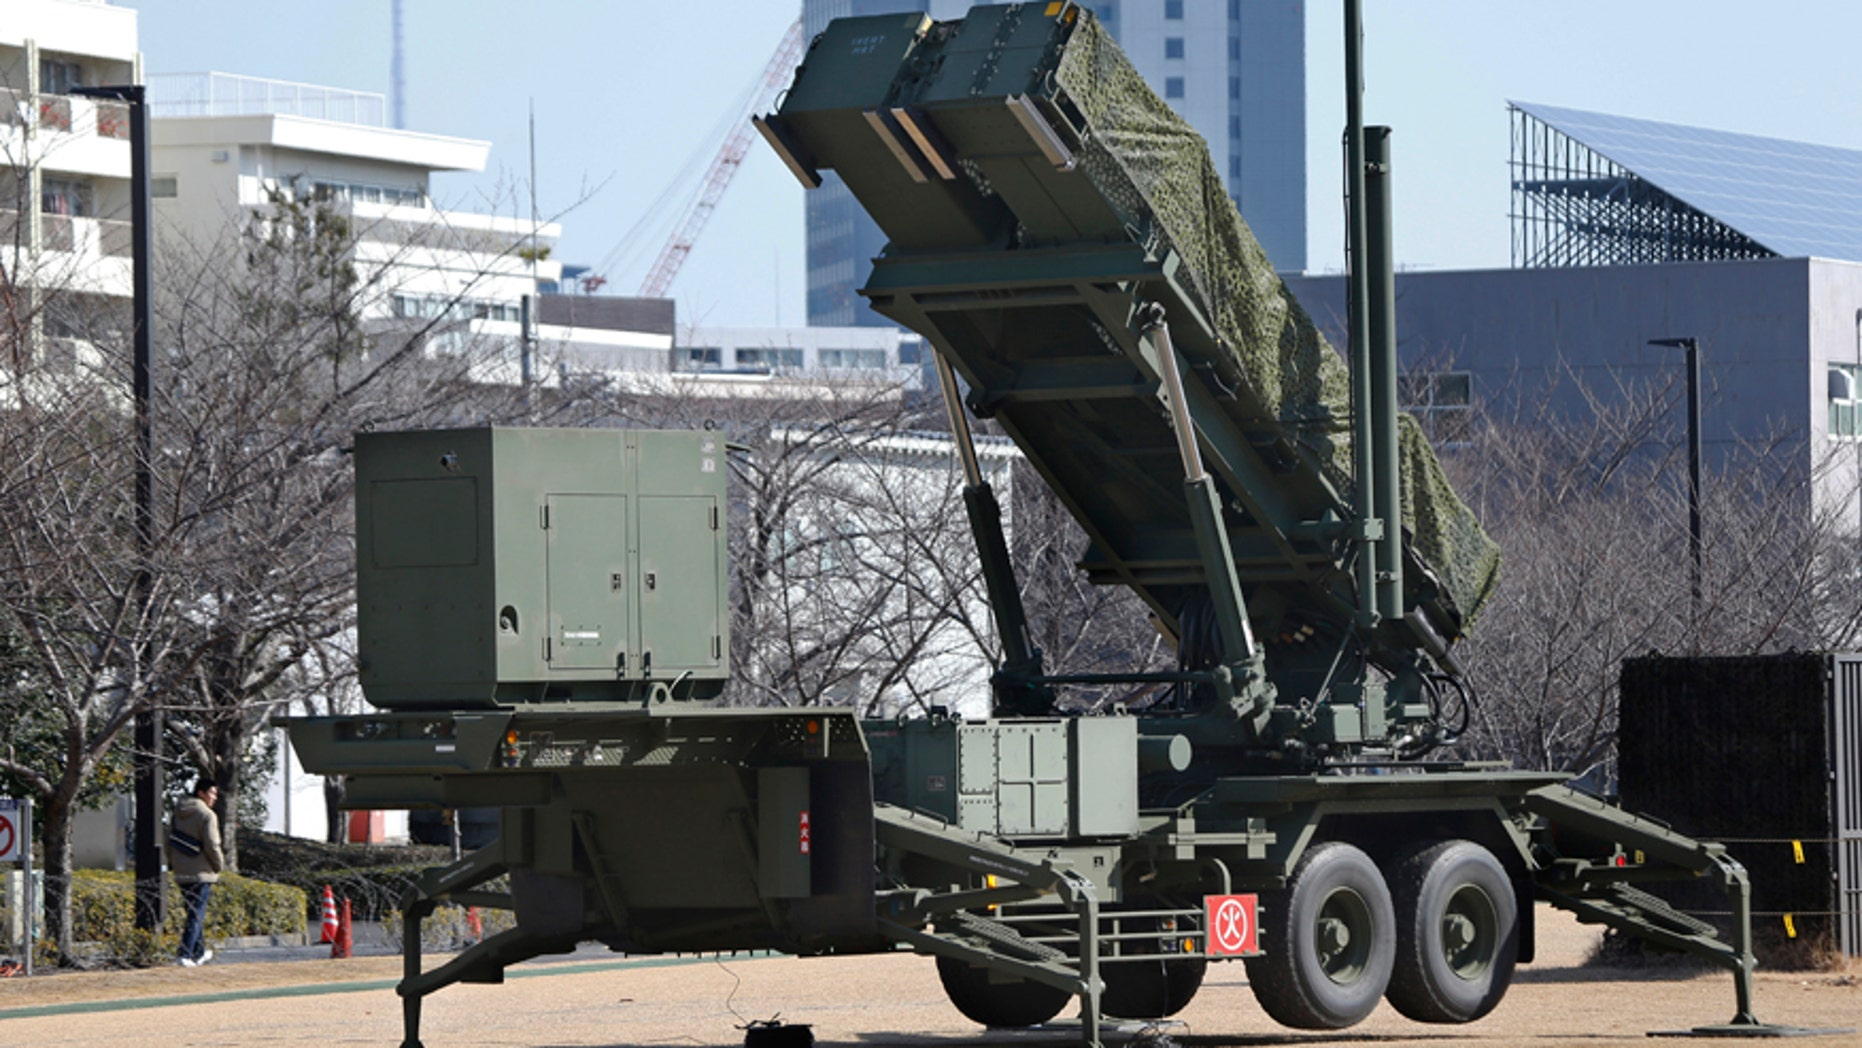 Jan. 31, 2016: A PAC-3 Patriot missile unit deployed for North Korea's rocket launch at the Defense Ministry in Tokyo.